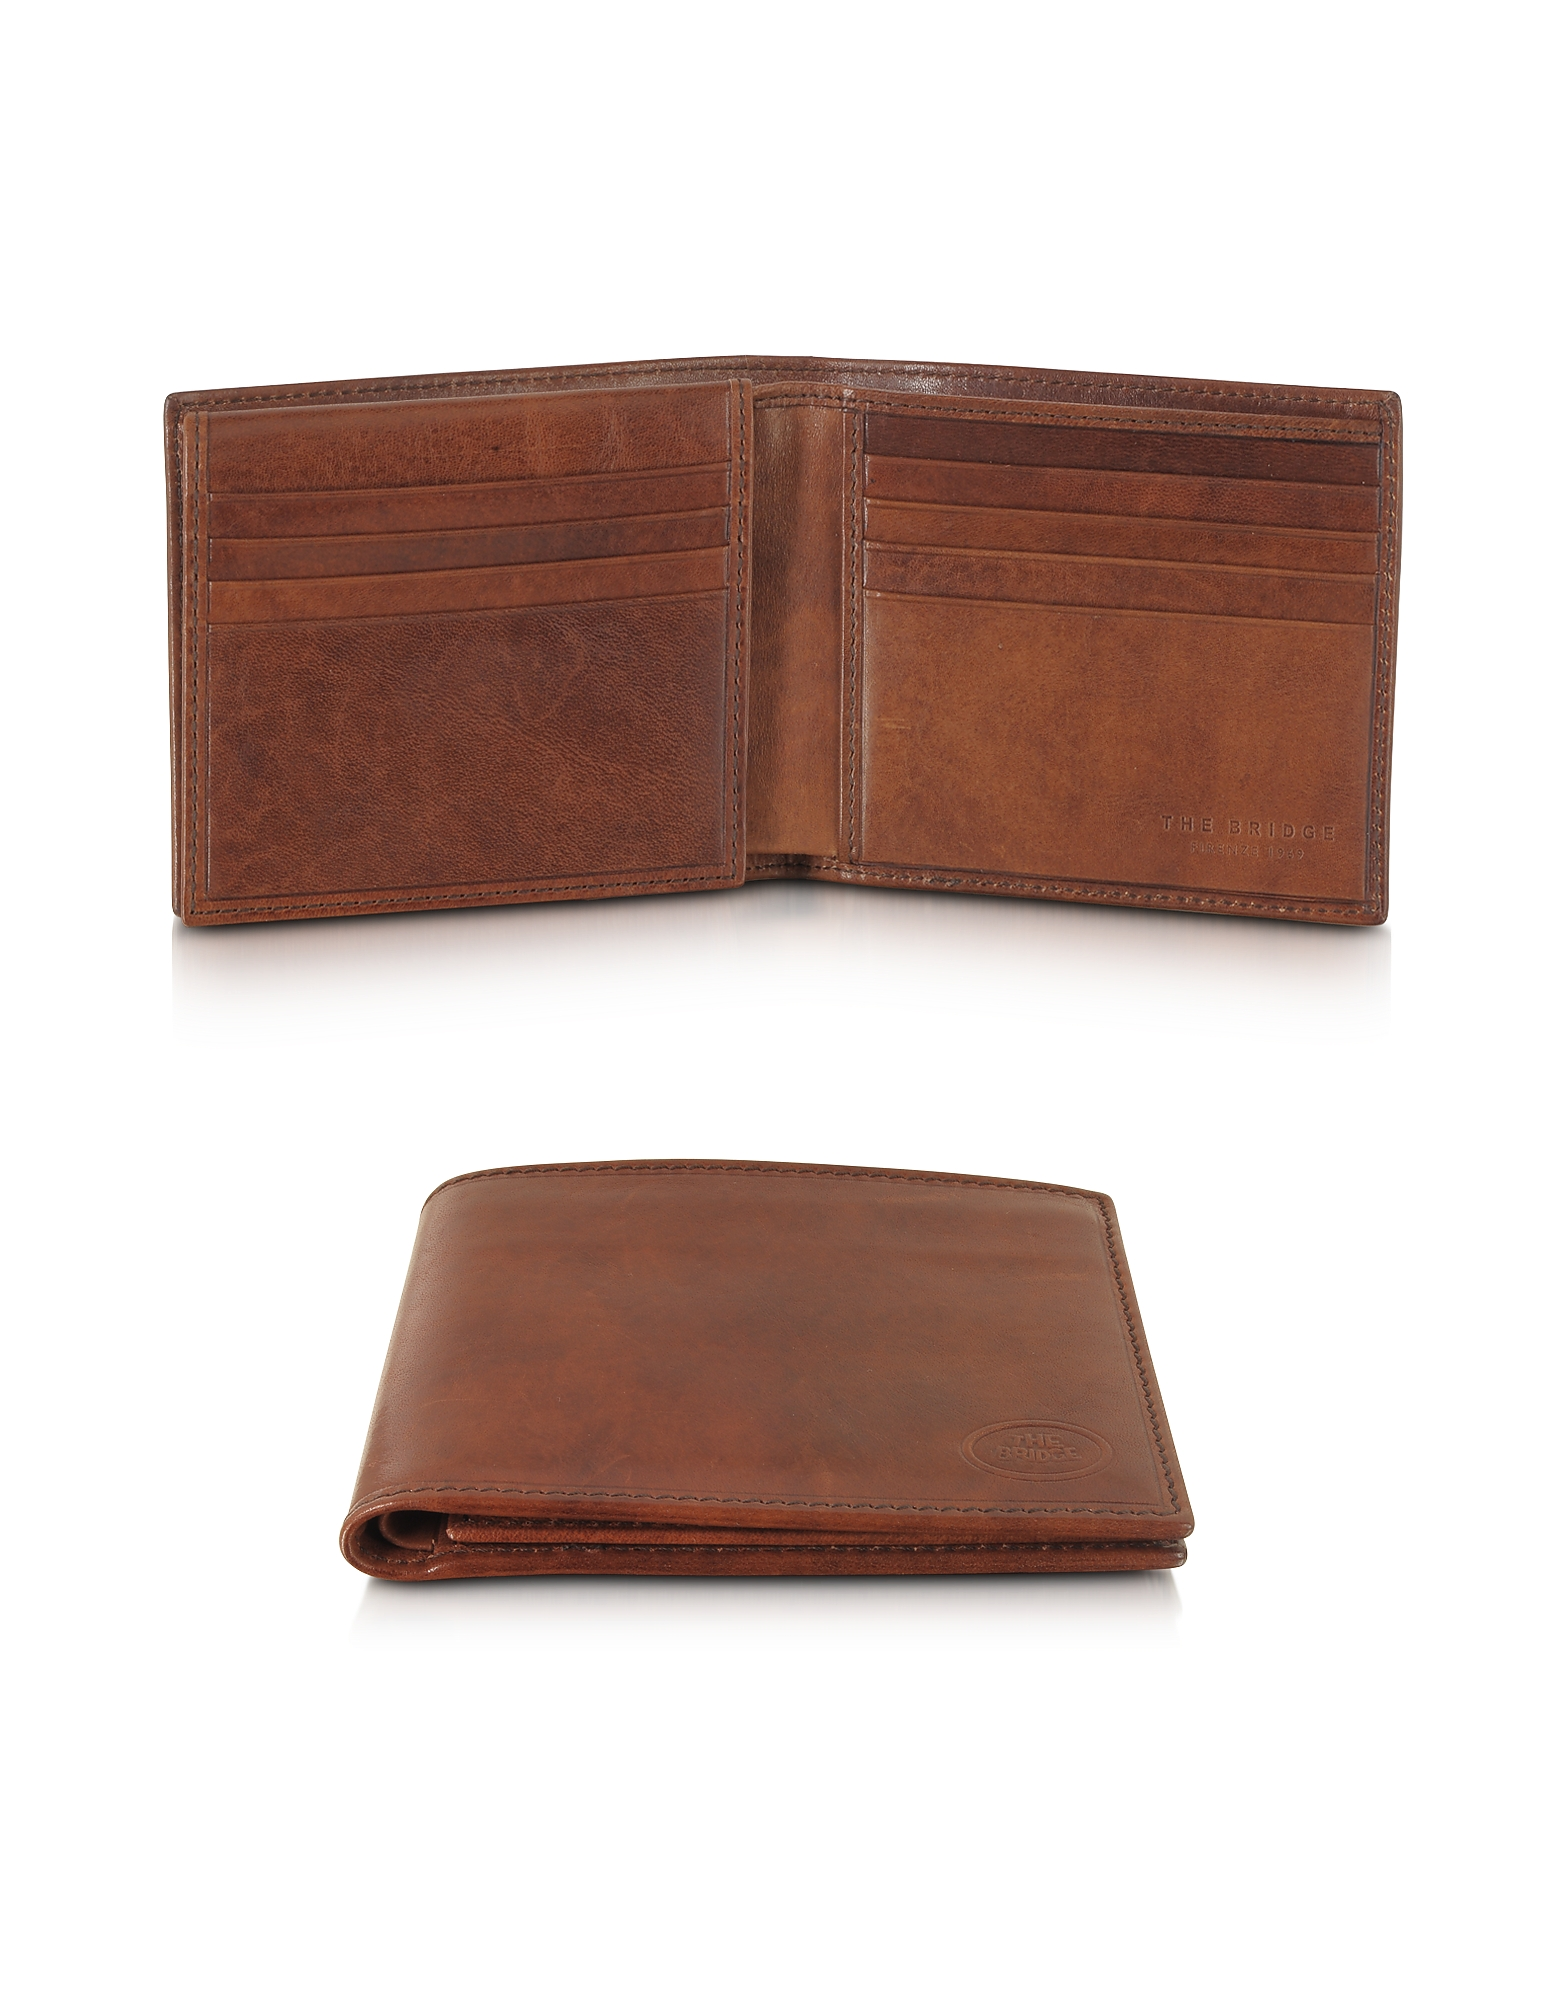 Story Uomo Leather Men's Billfold Wallet